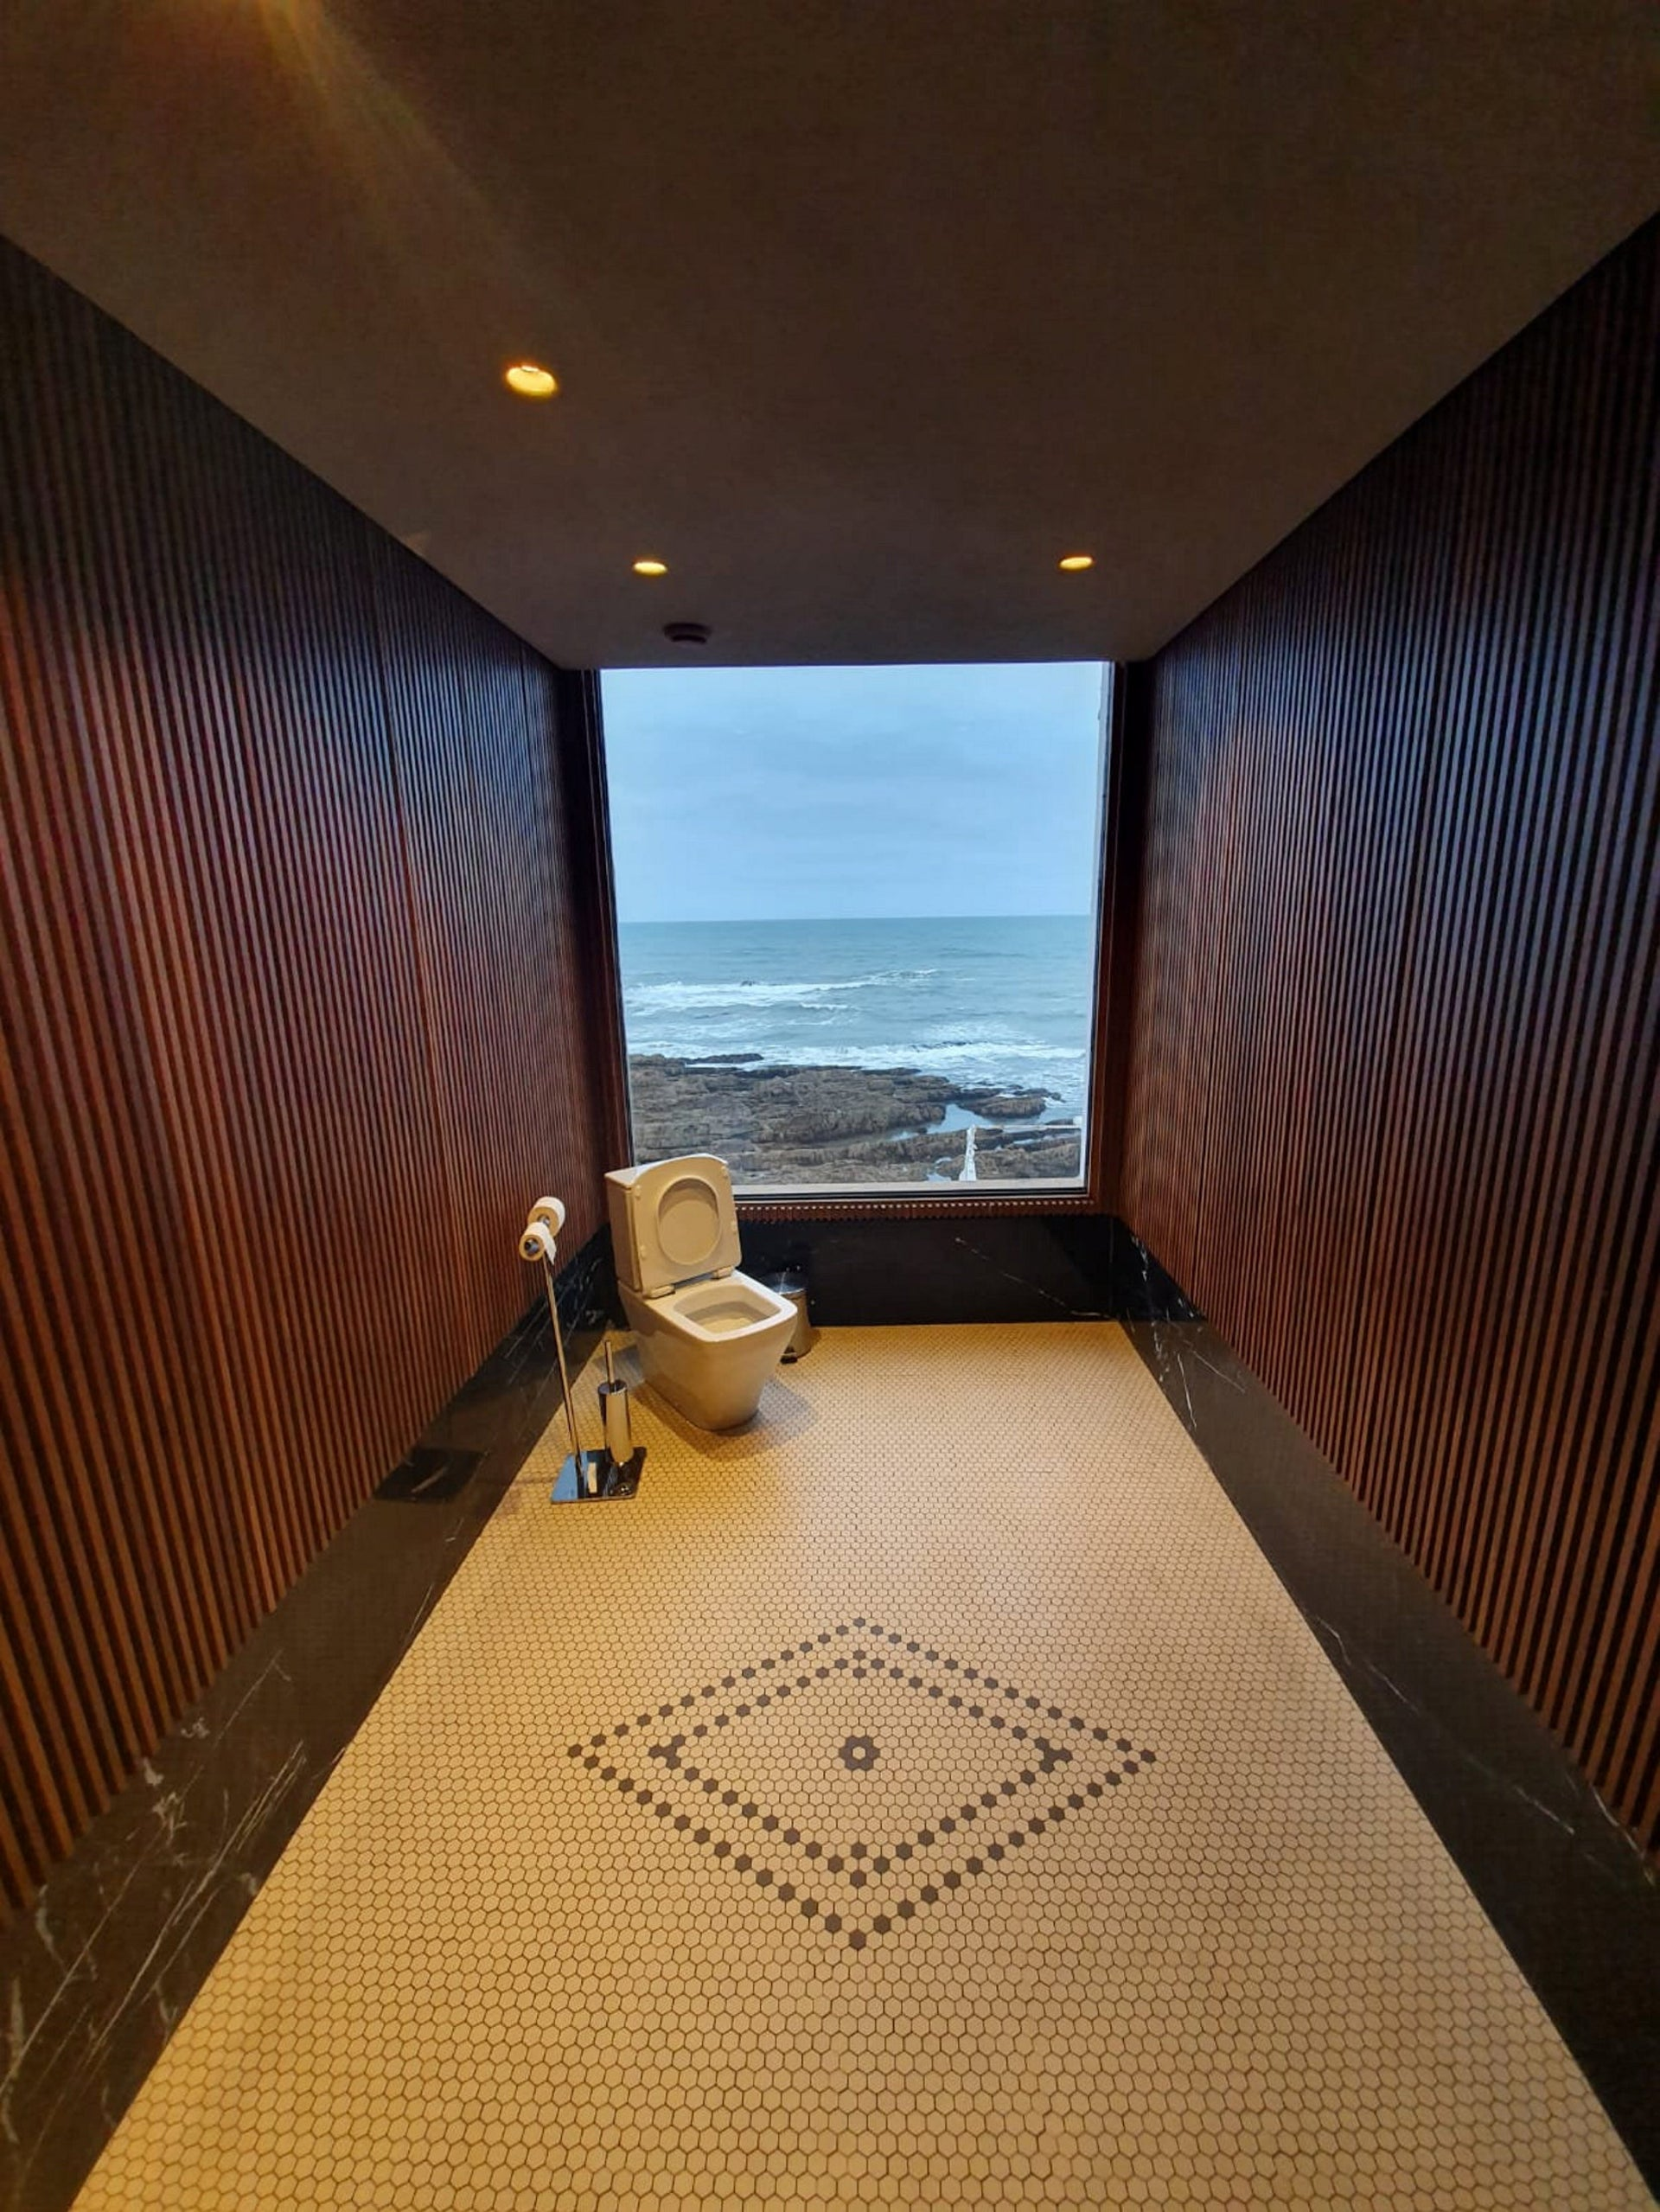 A restroom with a view: the stunning bathroom at Le Cabestan, a chic, modern restaurant in Casablanca.  Probably the most tagged location in Morocco.